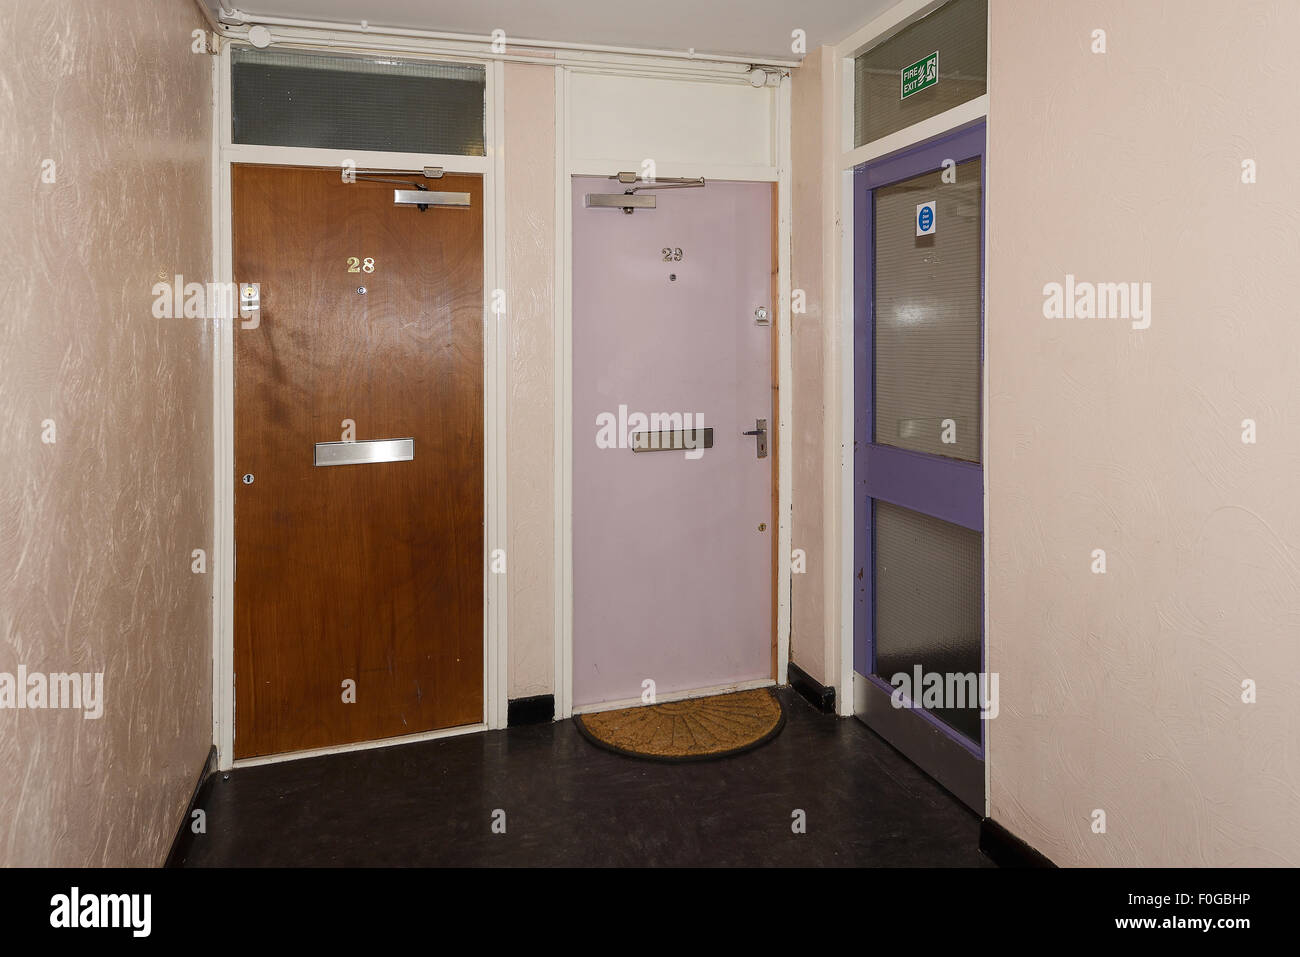 The front doors to two flats inside a council run residential tower block in Birmingham UK - Stock Image